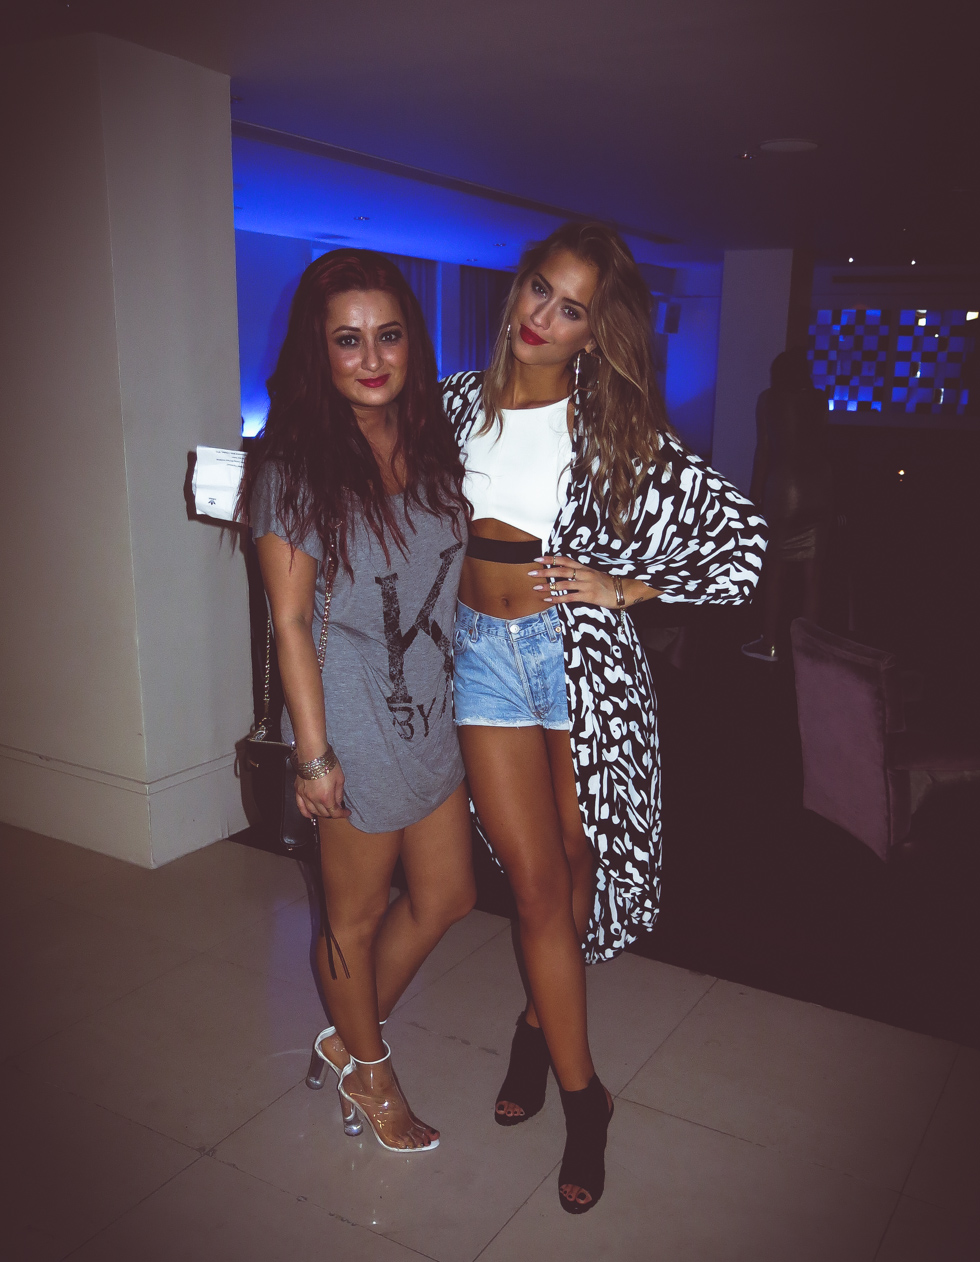 London_RitaOra_party_st-1